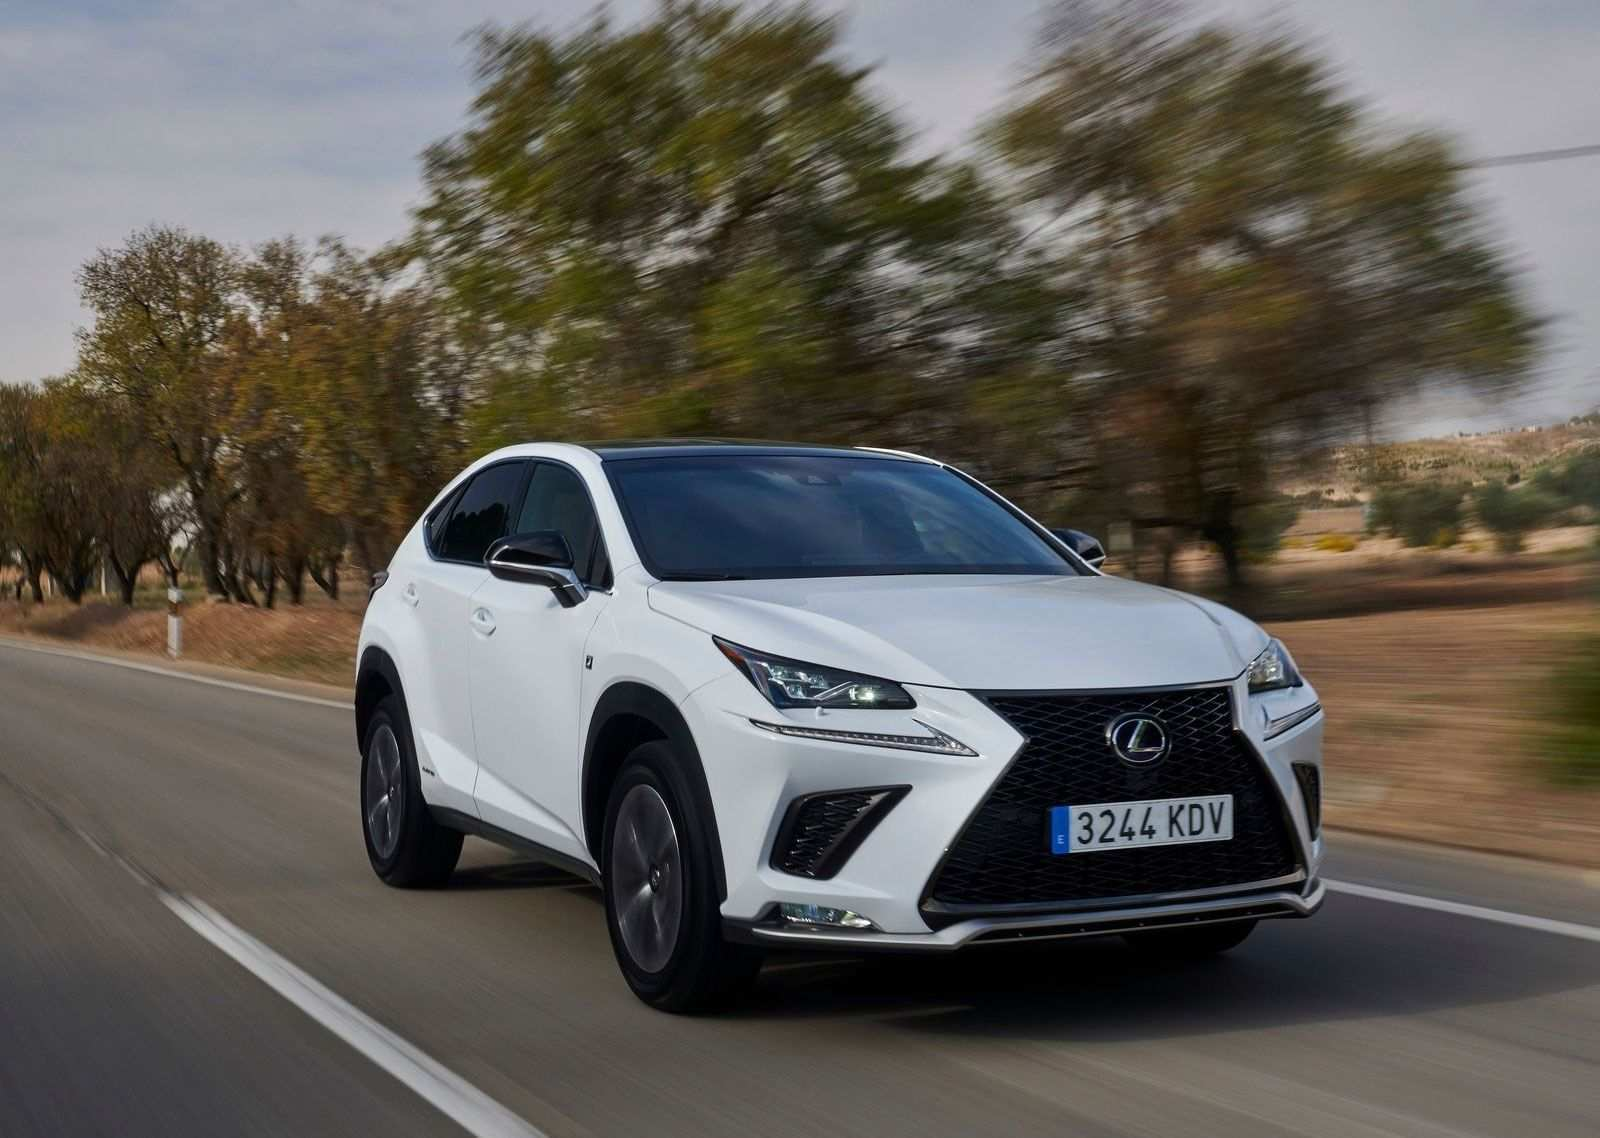 32 Best Review New Jeepeta Lexus 2019 Redesign Price And Review Spesification with New Jeepeta Lexus 2019 Redesign Price And Review